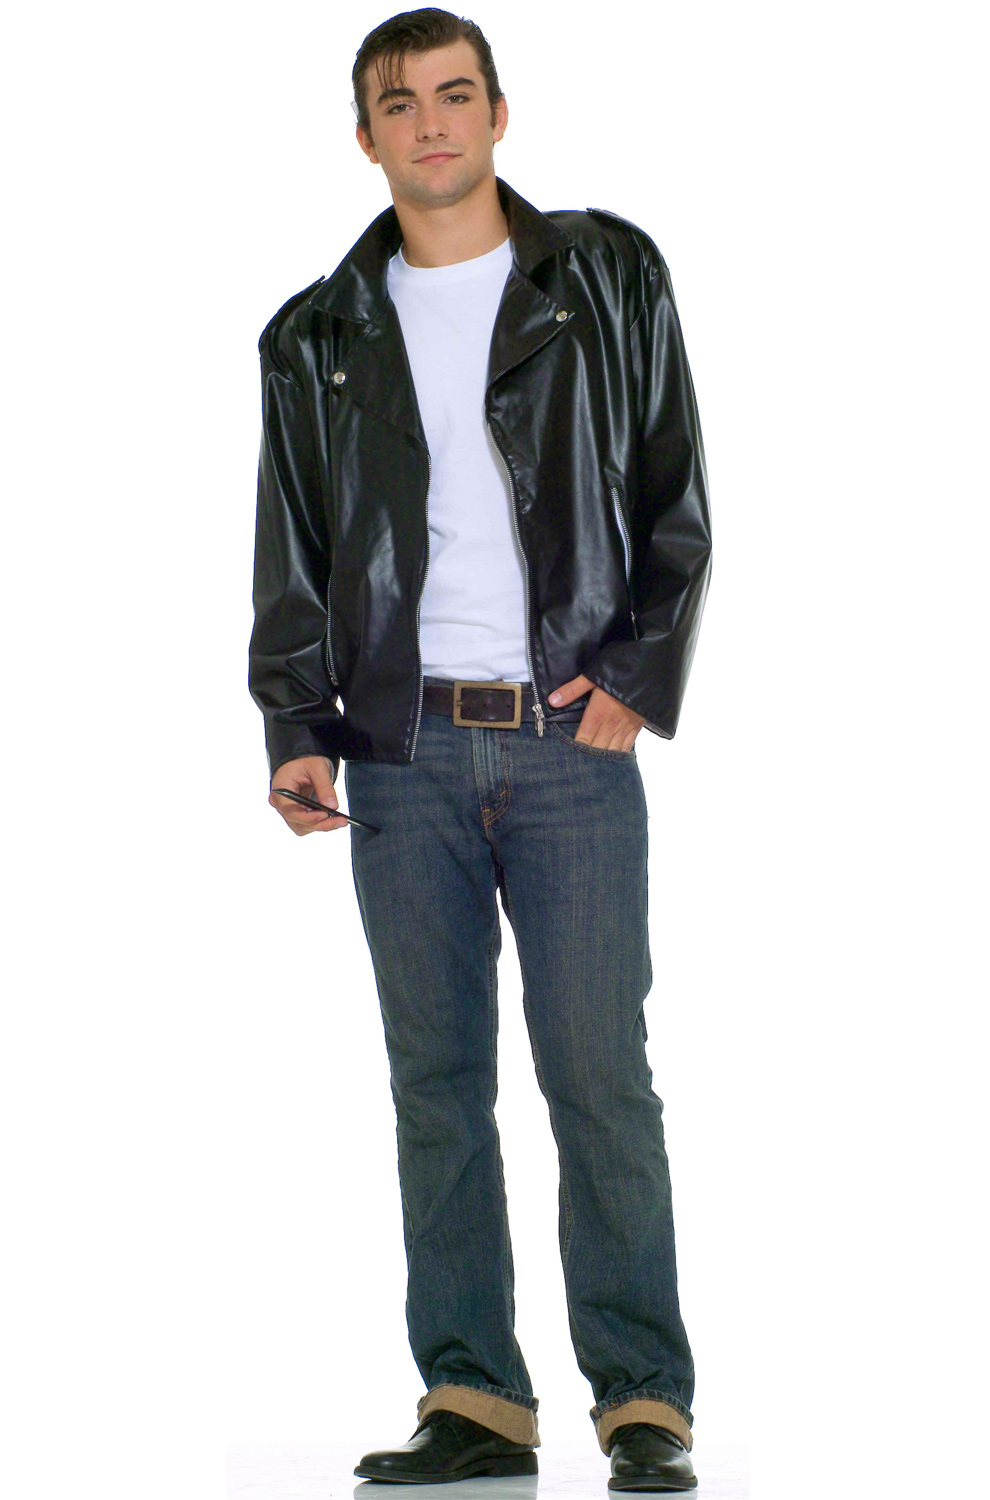 Grease Adults Halloween Costumes Canada 2016 Costumes Canada